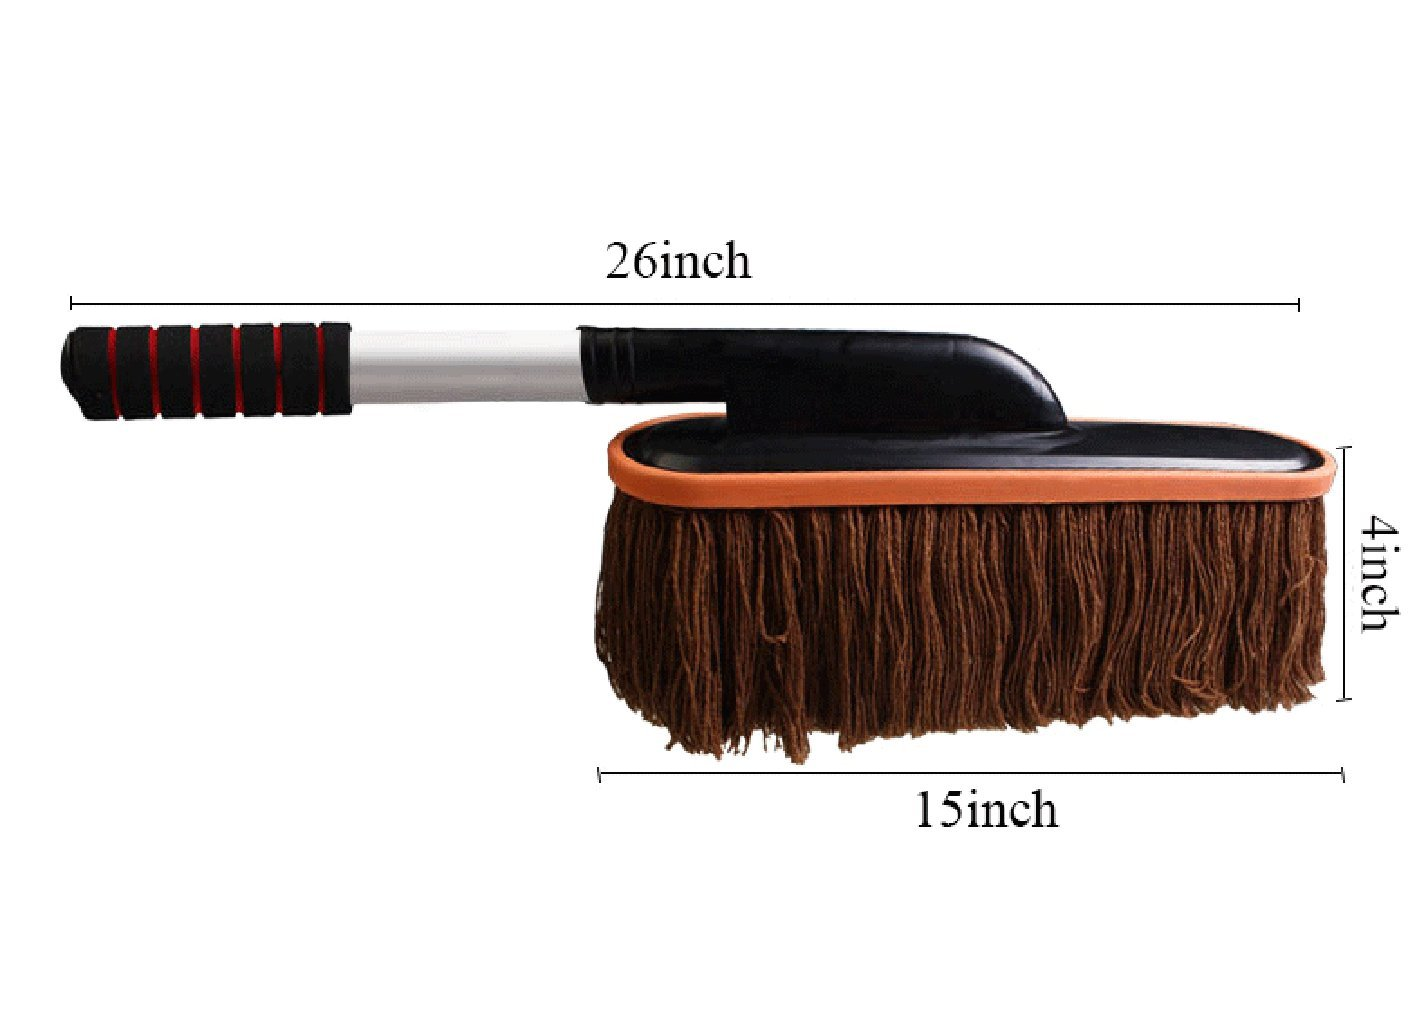 UniEco Car Wash Brush Length 26-Inch xWidth 15-Inch xHeight 4-Inch Brown Color ,Car Wash Mop